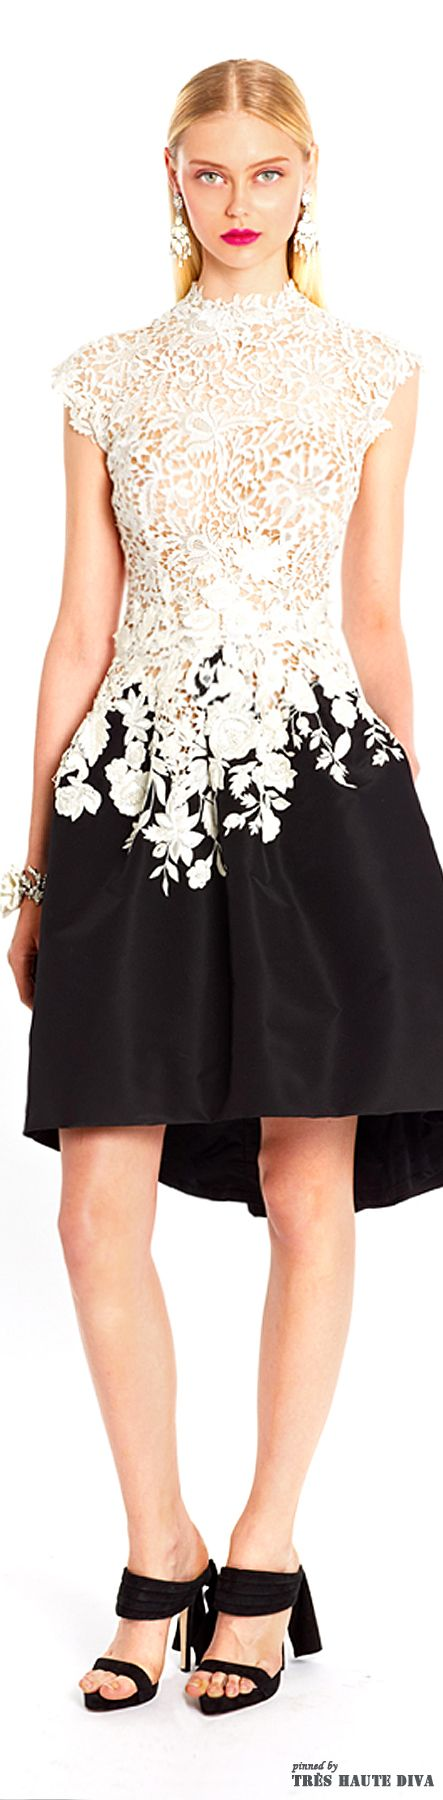 Oscar de la Renta Resort 2015 Collection. Black and white and lace all over. So feminine and beautiful! #fashion #ladies #dress